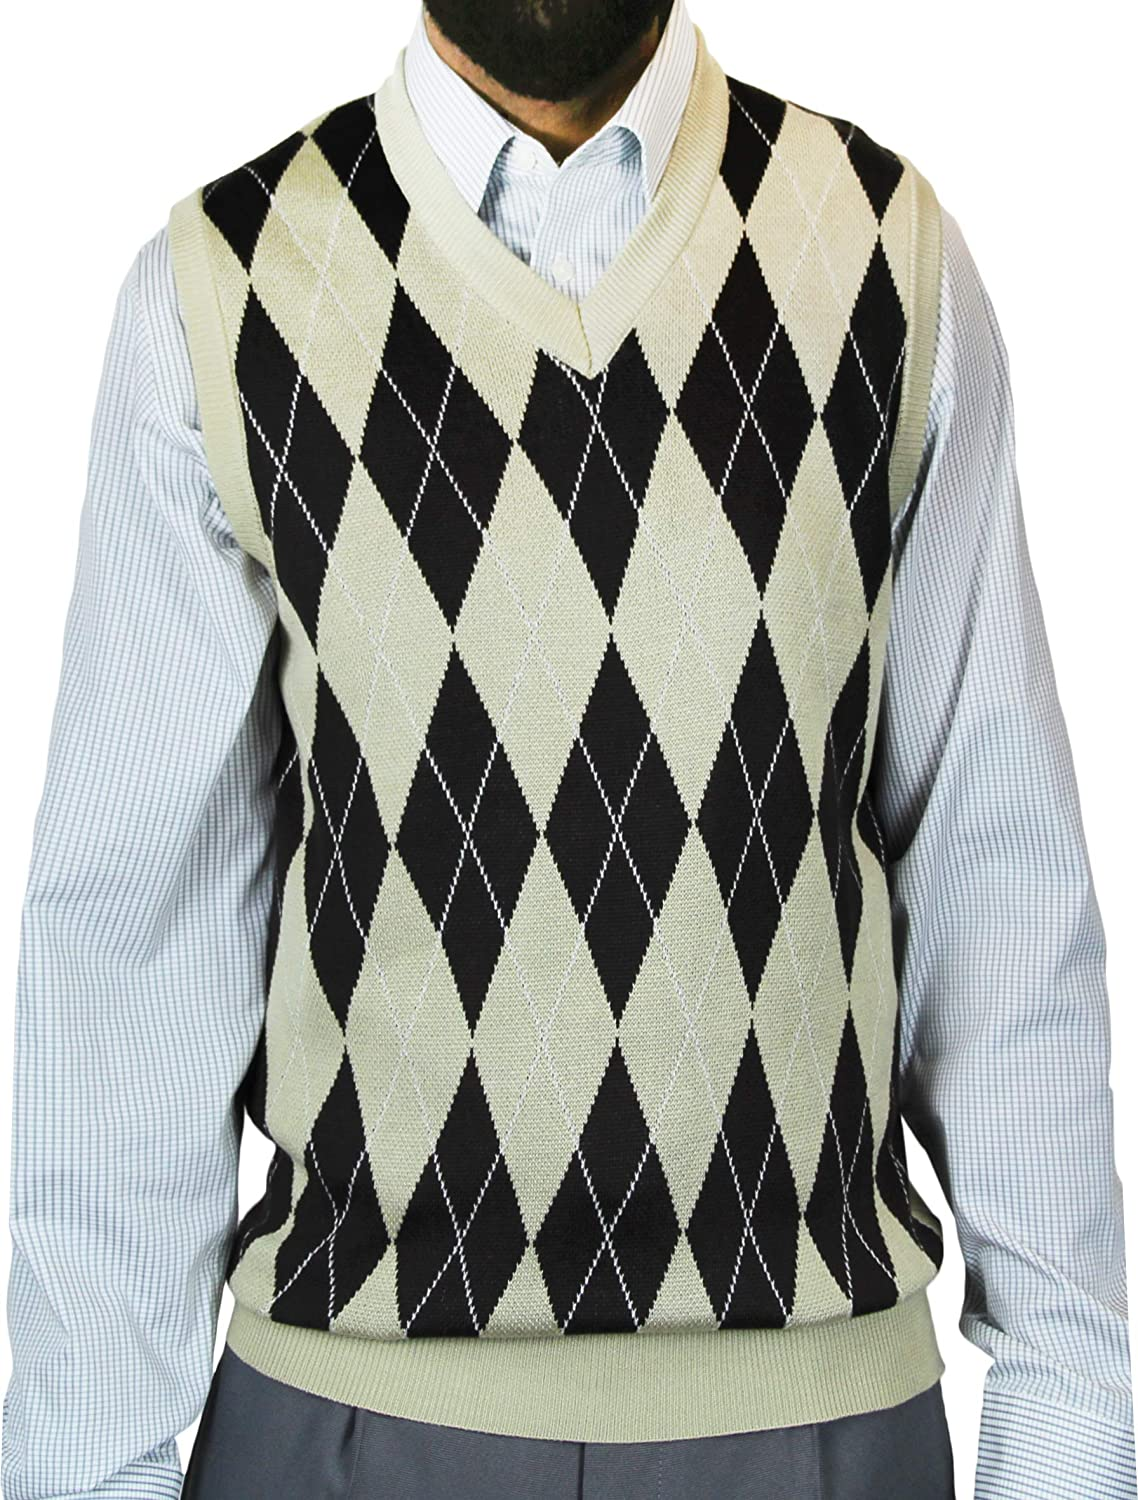 Blue Ocean Big Men Argyle Jacquard Sweater Vest SV-2455BM